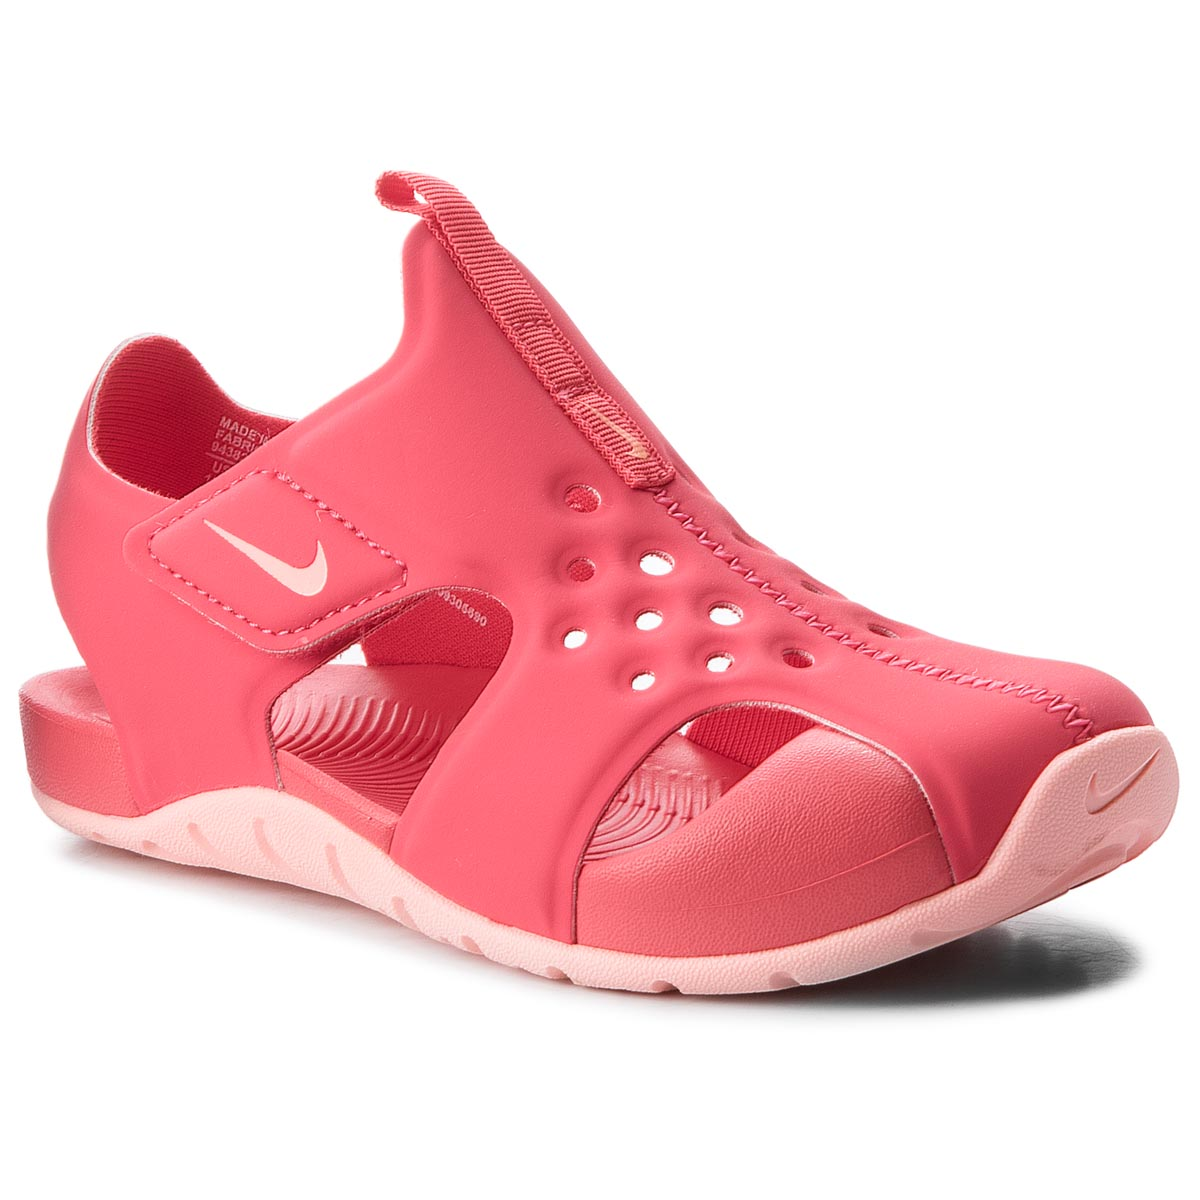 c020e791fe9a Sandály NIKE - Sunray Protect 2 (PS) 943828 600 Tropical Pink Bleached Coral